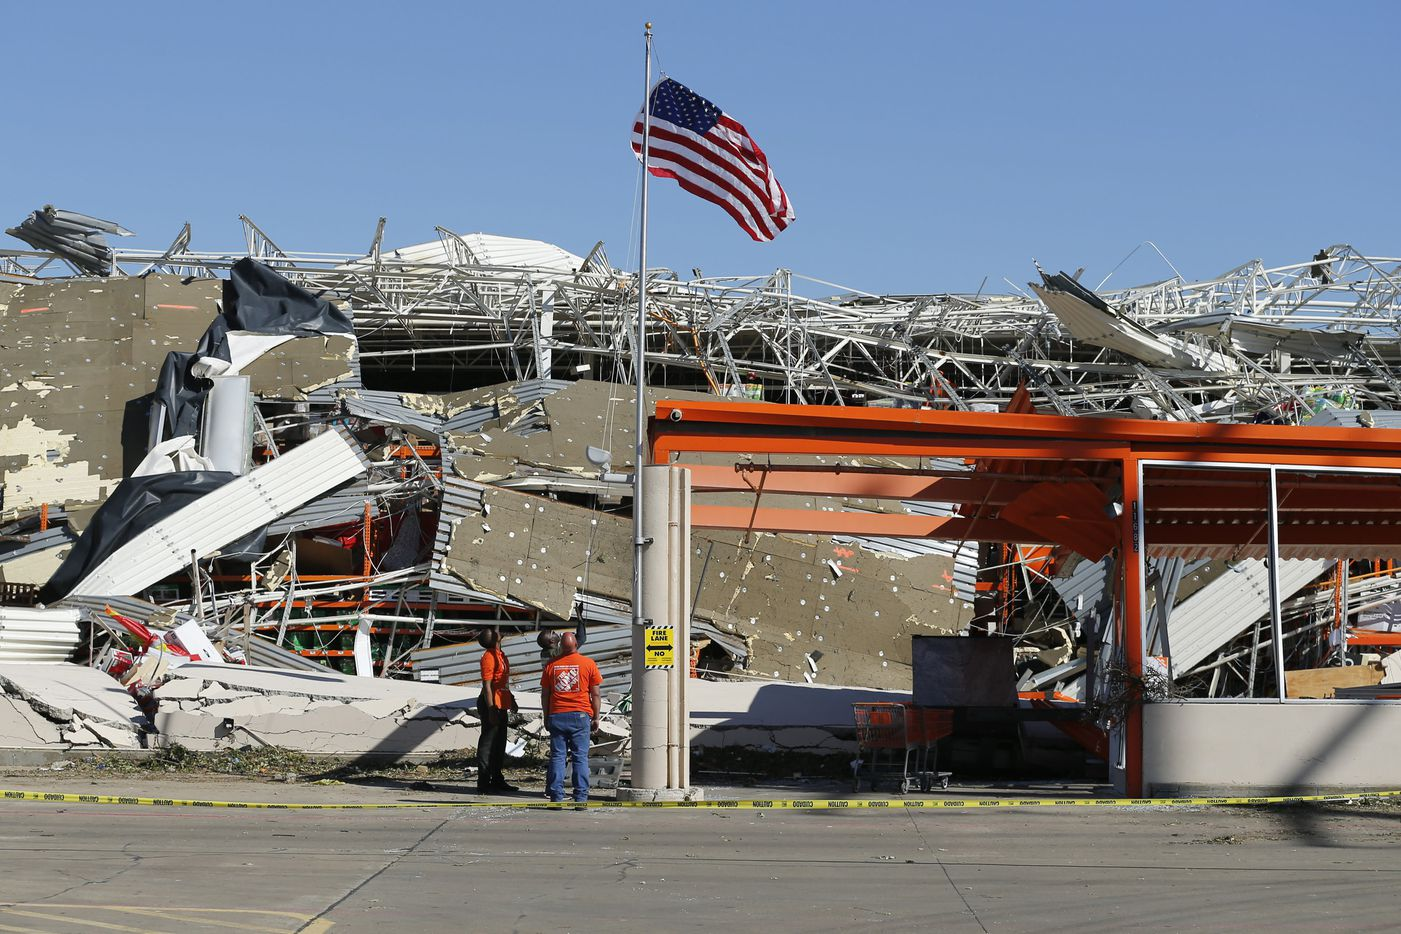 The Home Depot employees A.J. Kobena (center) raises the U.S. flag on the flagpole outside the destroyed store on N. Central Expressway in Dallas, Monday, October 21, 2019. Joining him were fellow employees Jonathan Shields and Jordan Jasper (left). A tornado tore through the entire neighborhood knocking down trees and ripping roofs from homes. (Tom Fox/The Dallas Morning News)